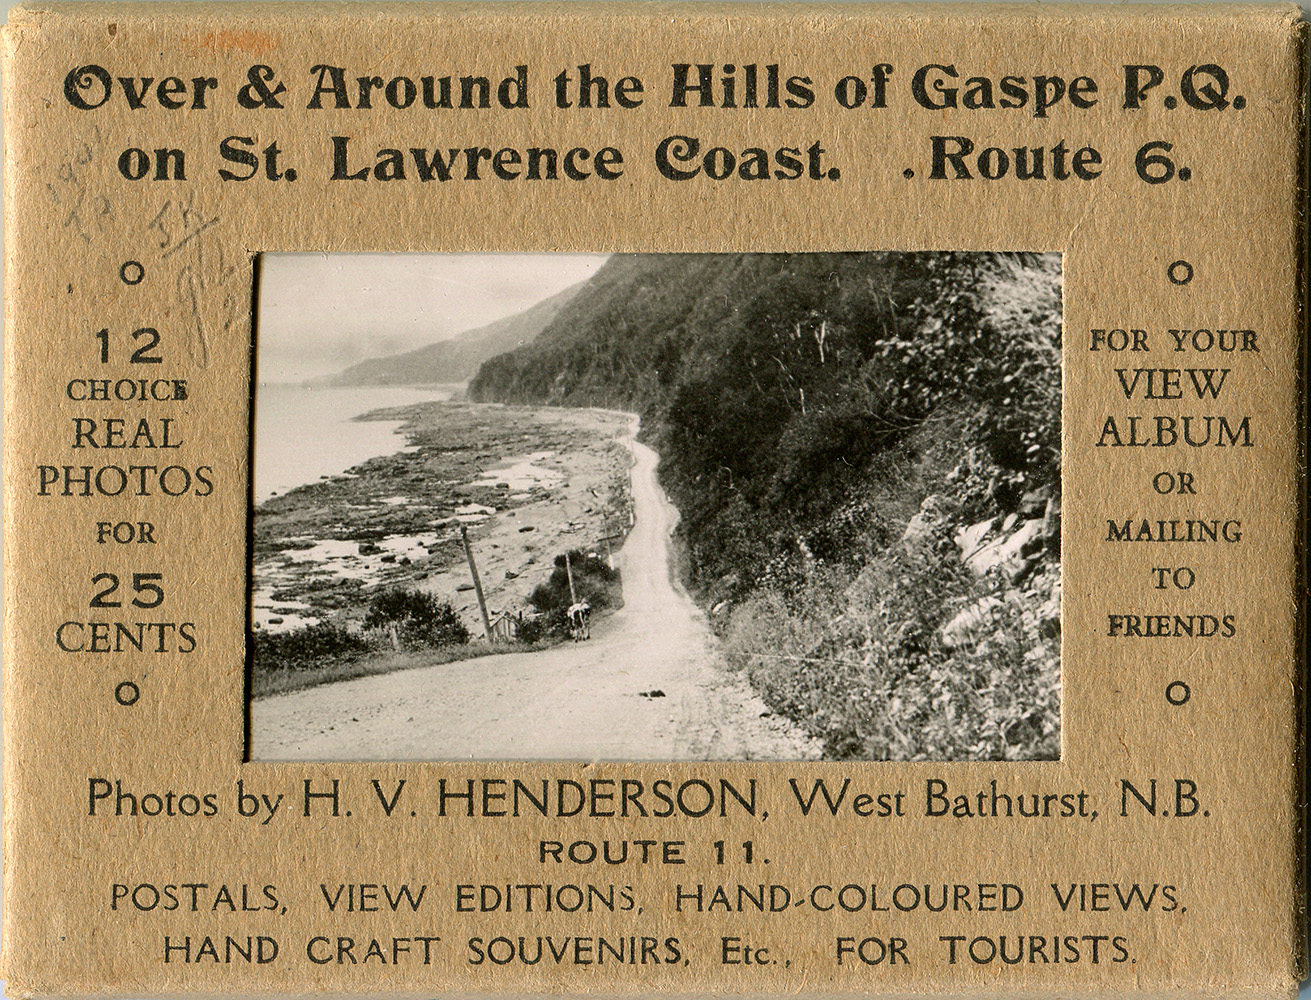 Set of 12 souvenir photographs by the photographer H.V. Henderson, sold in cardboard packaging on which is written: Over & Around the Hill of Gaspé P.Q. on St. Lawrence Coast. Route 6 - 12 choice Real Photos for 25 cents – For you view album or mailing to friends.